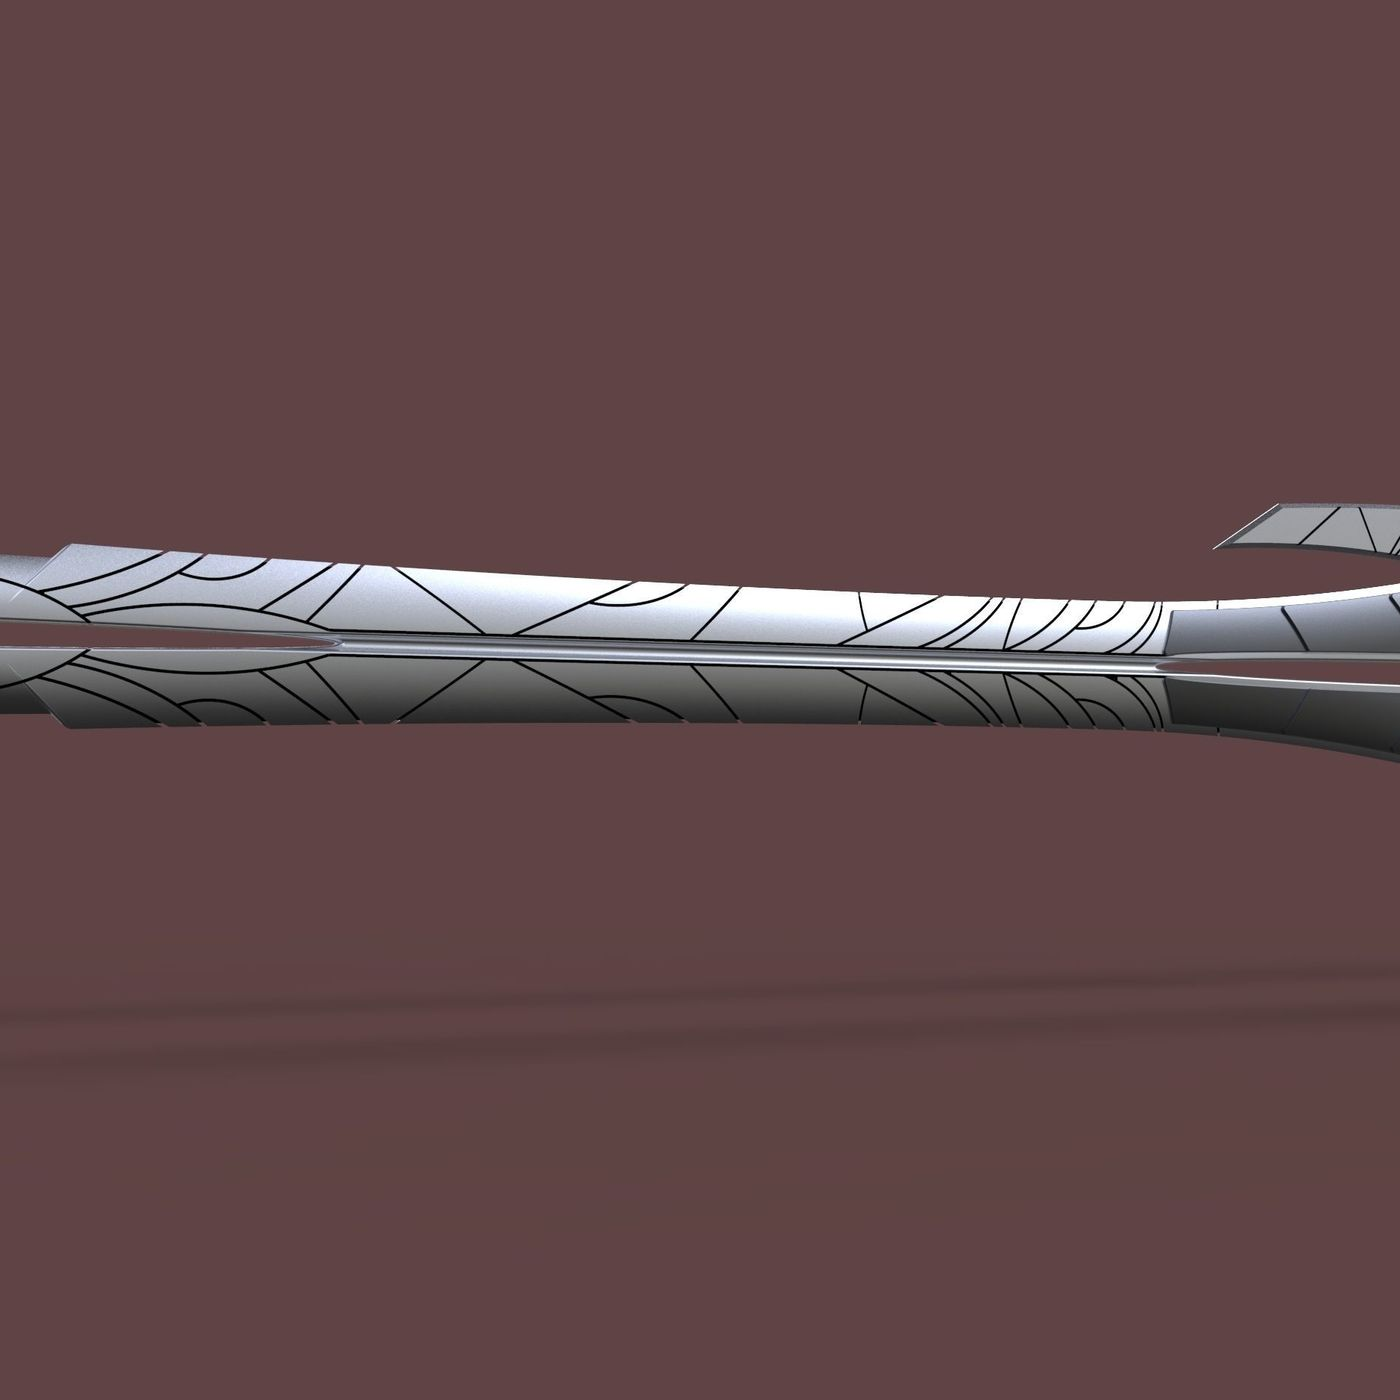 Sword of Gamora from Guardians of the Galaxy